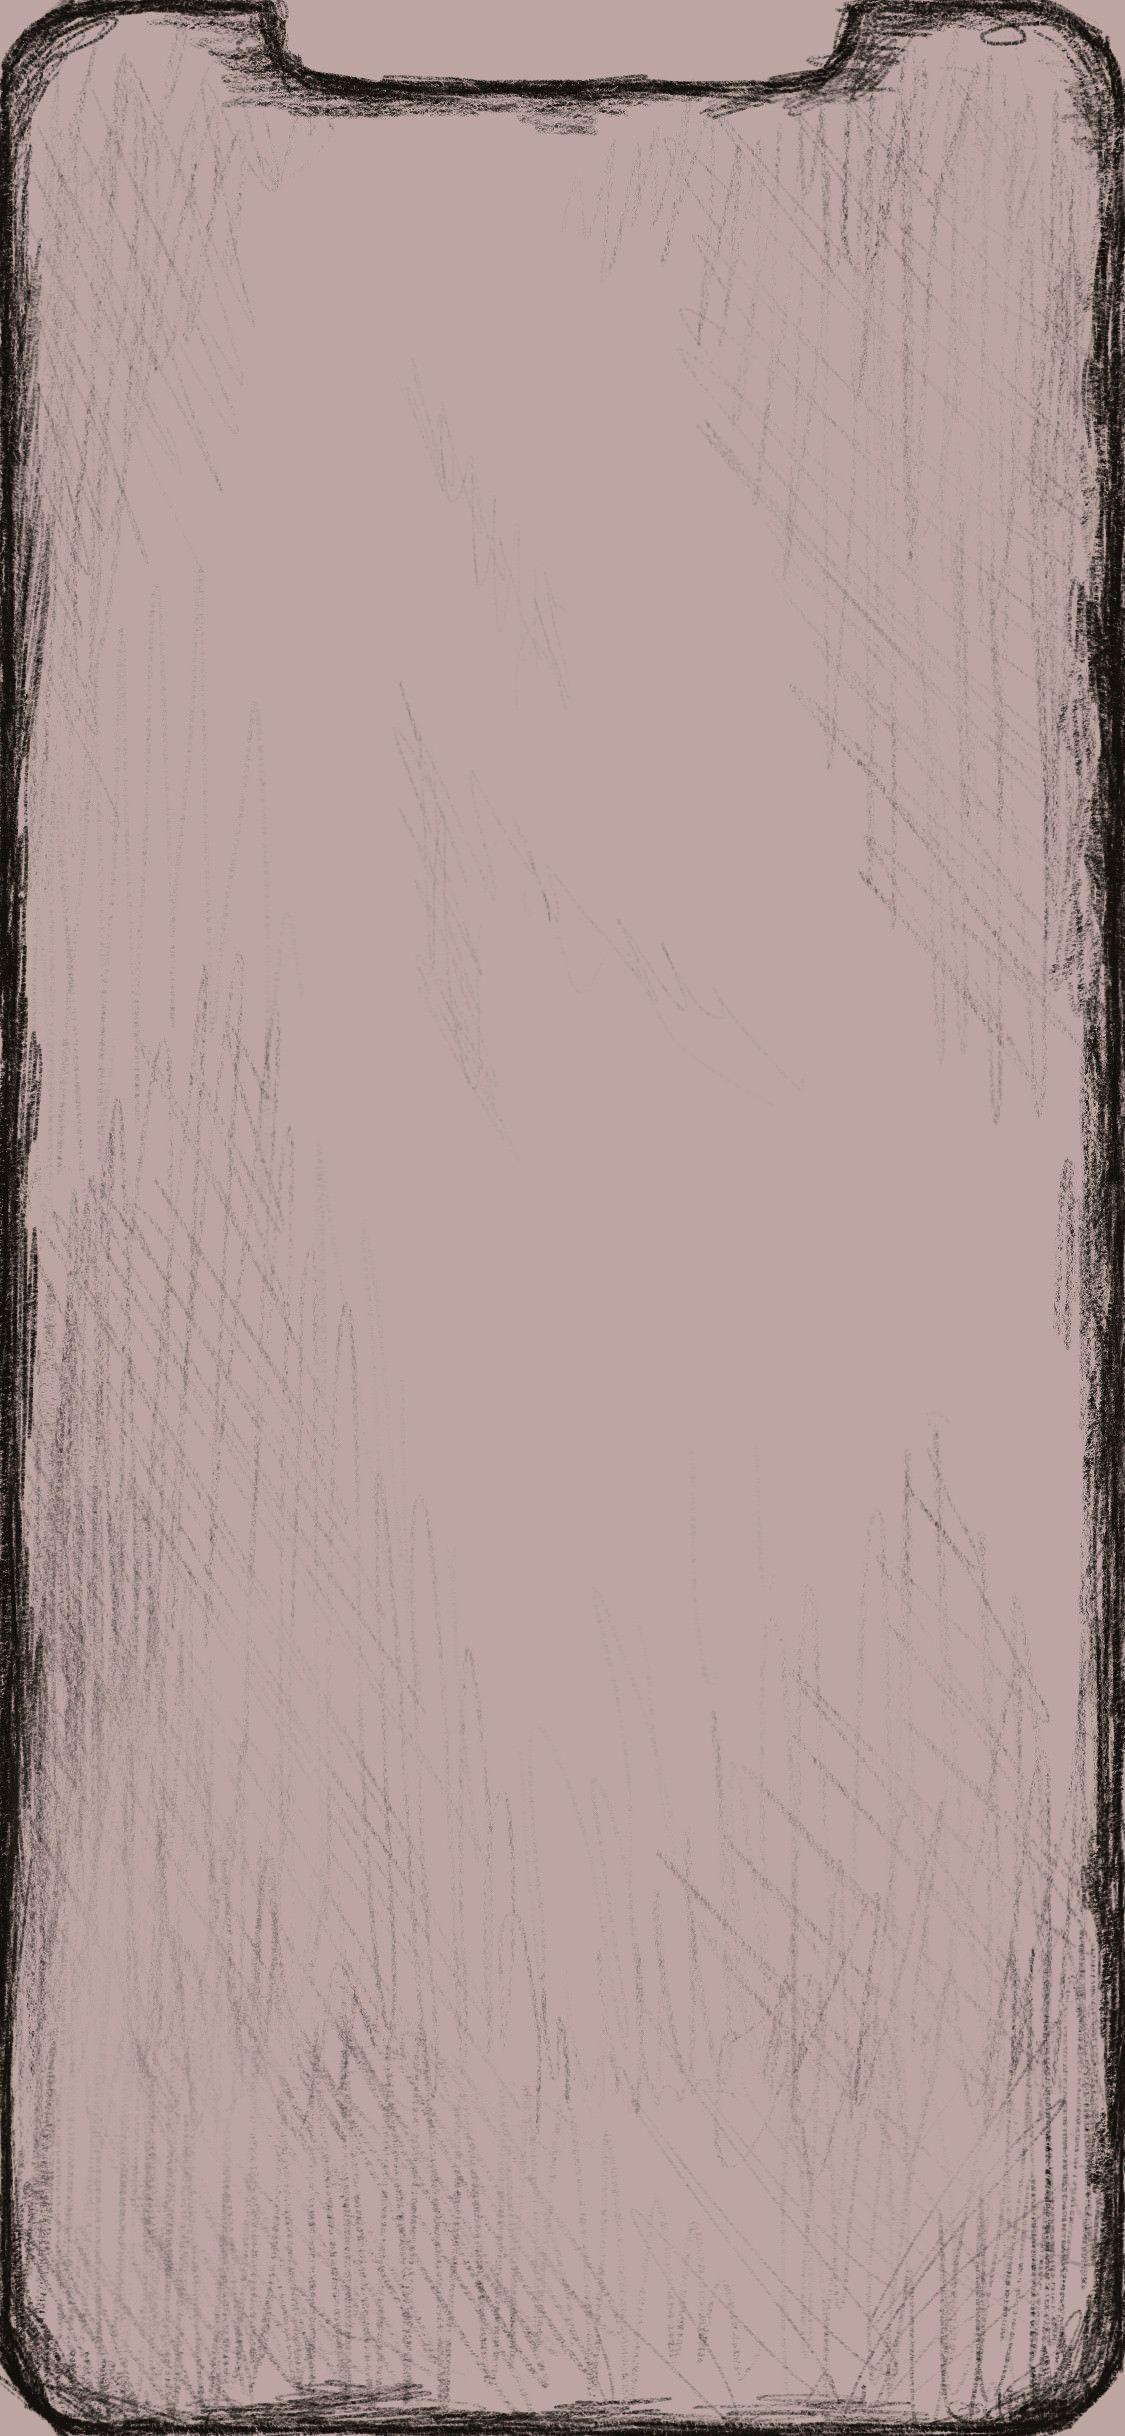 Iphone 11 Border Wallpaper : iphone, border, wallpaper, Sketched, Border, Wallpaper, (Four, Other, Colors), Iphone, Images,, Wallpaper,